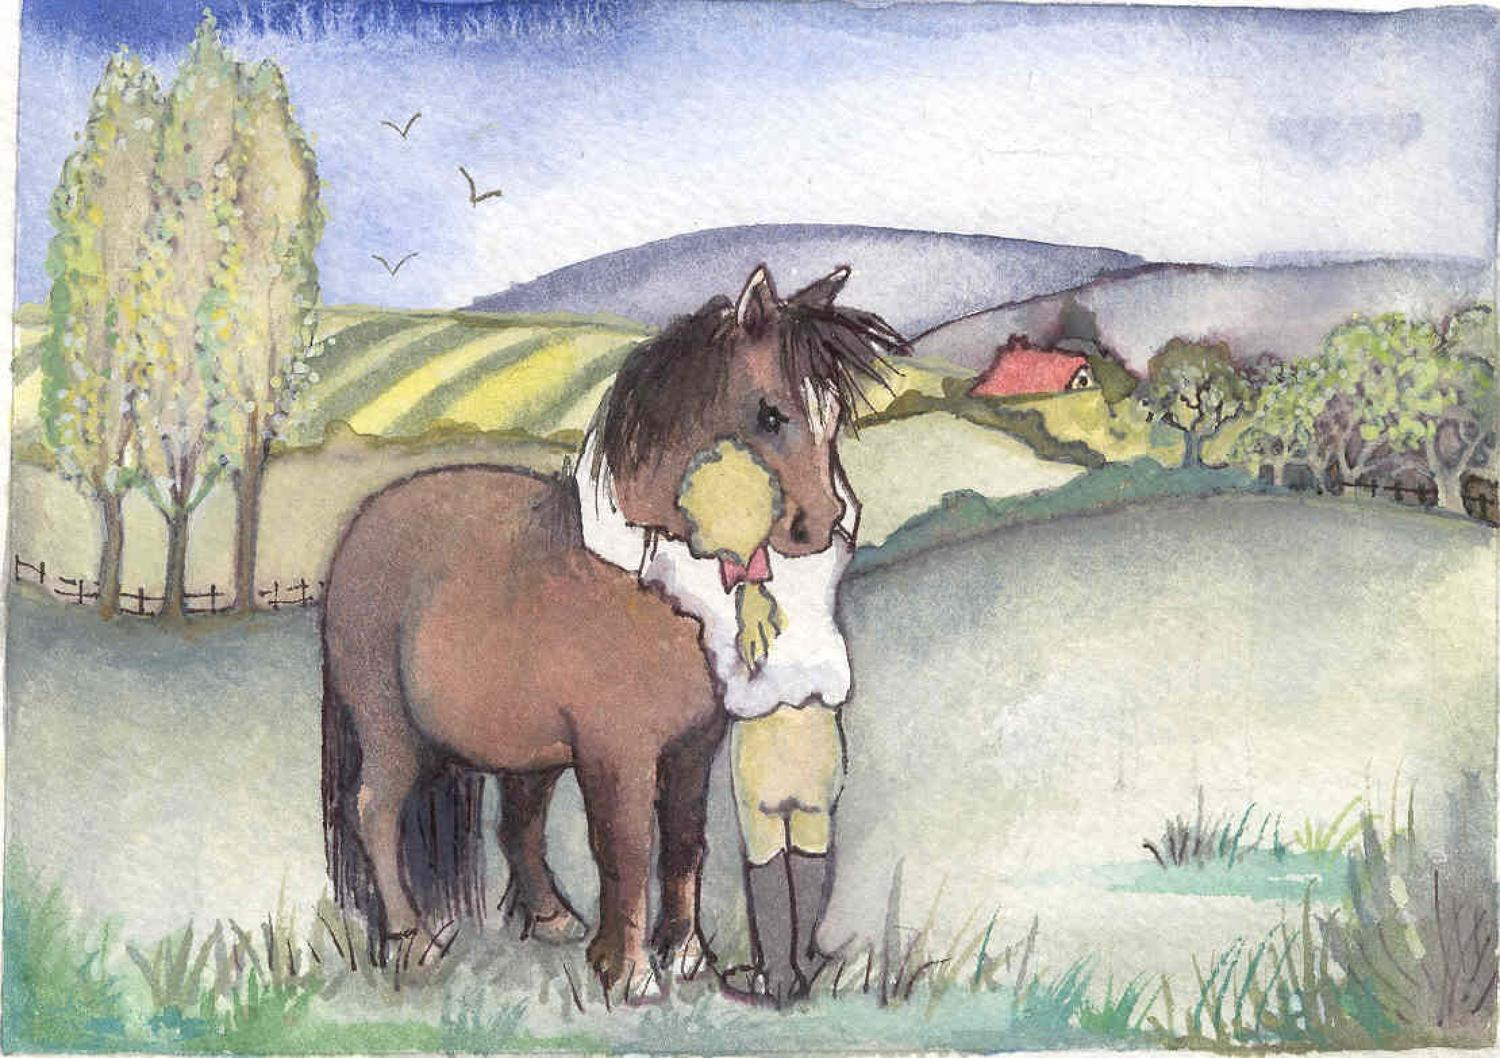 A hug for my horse